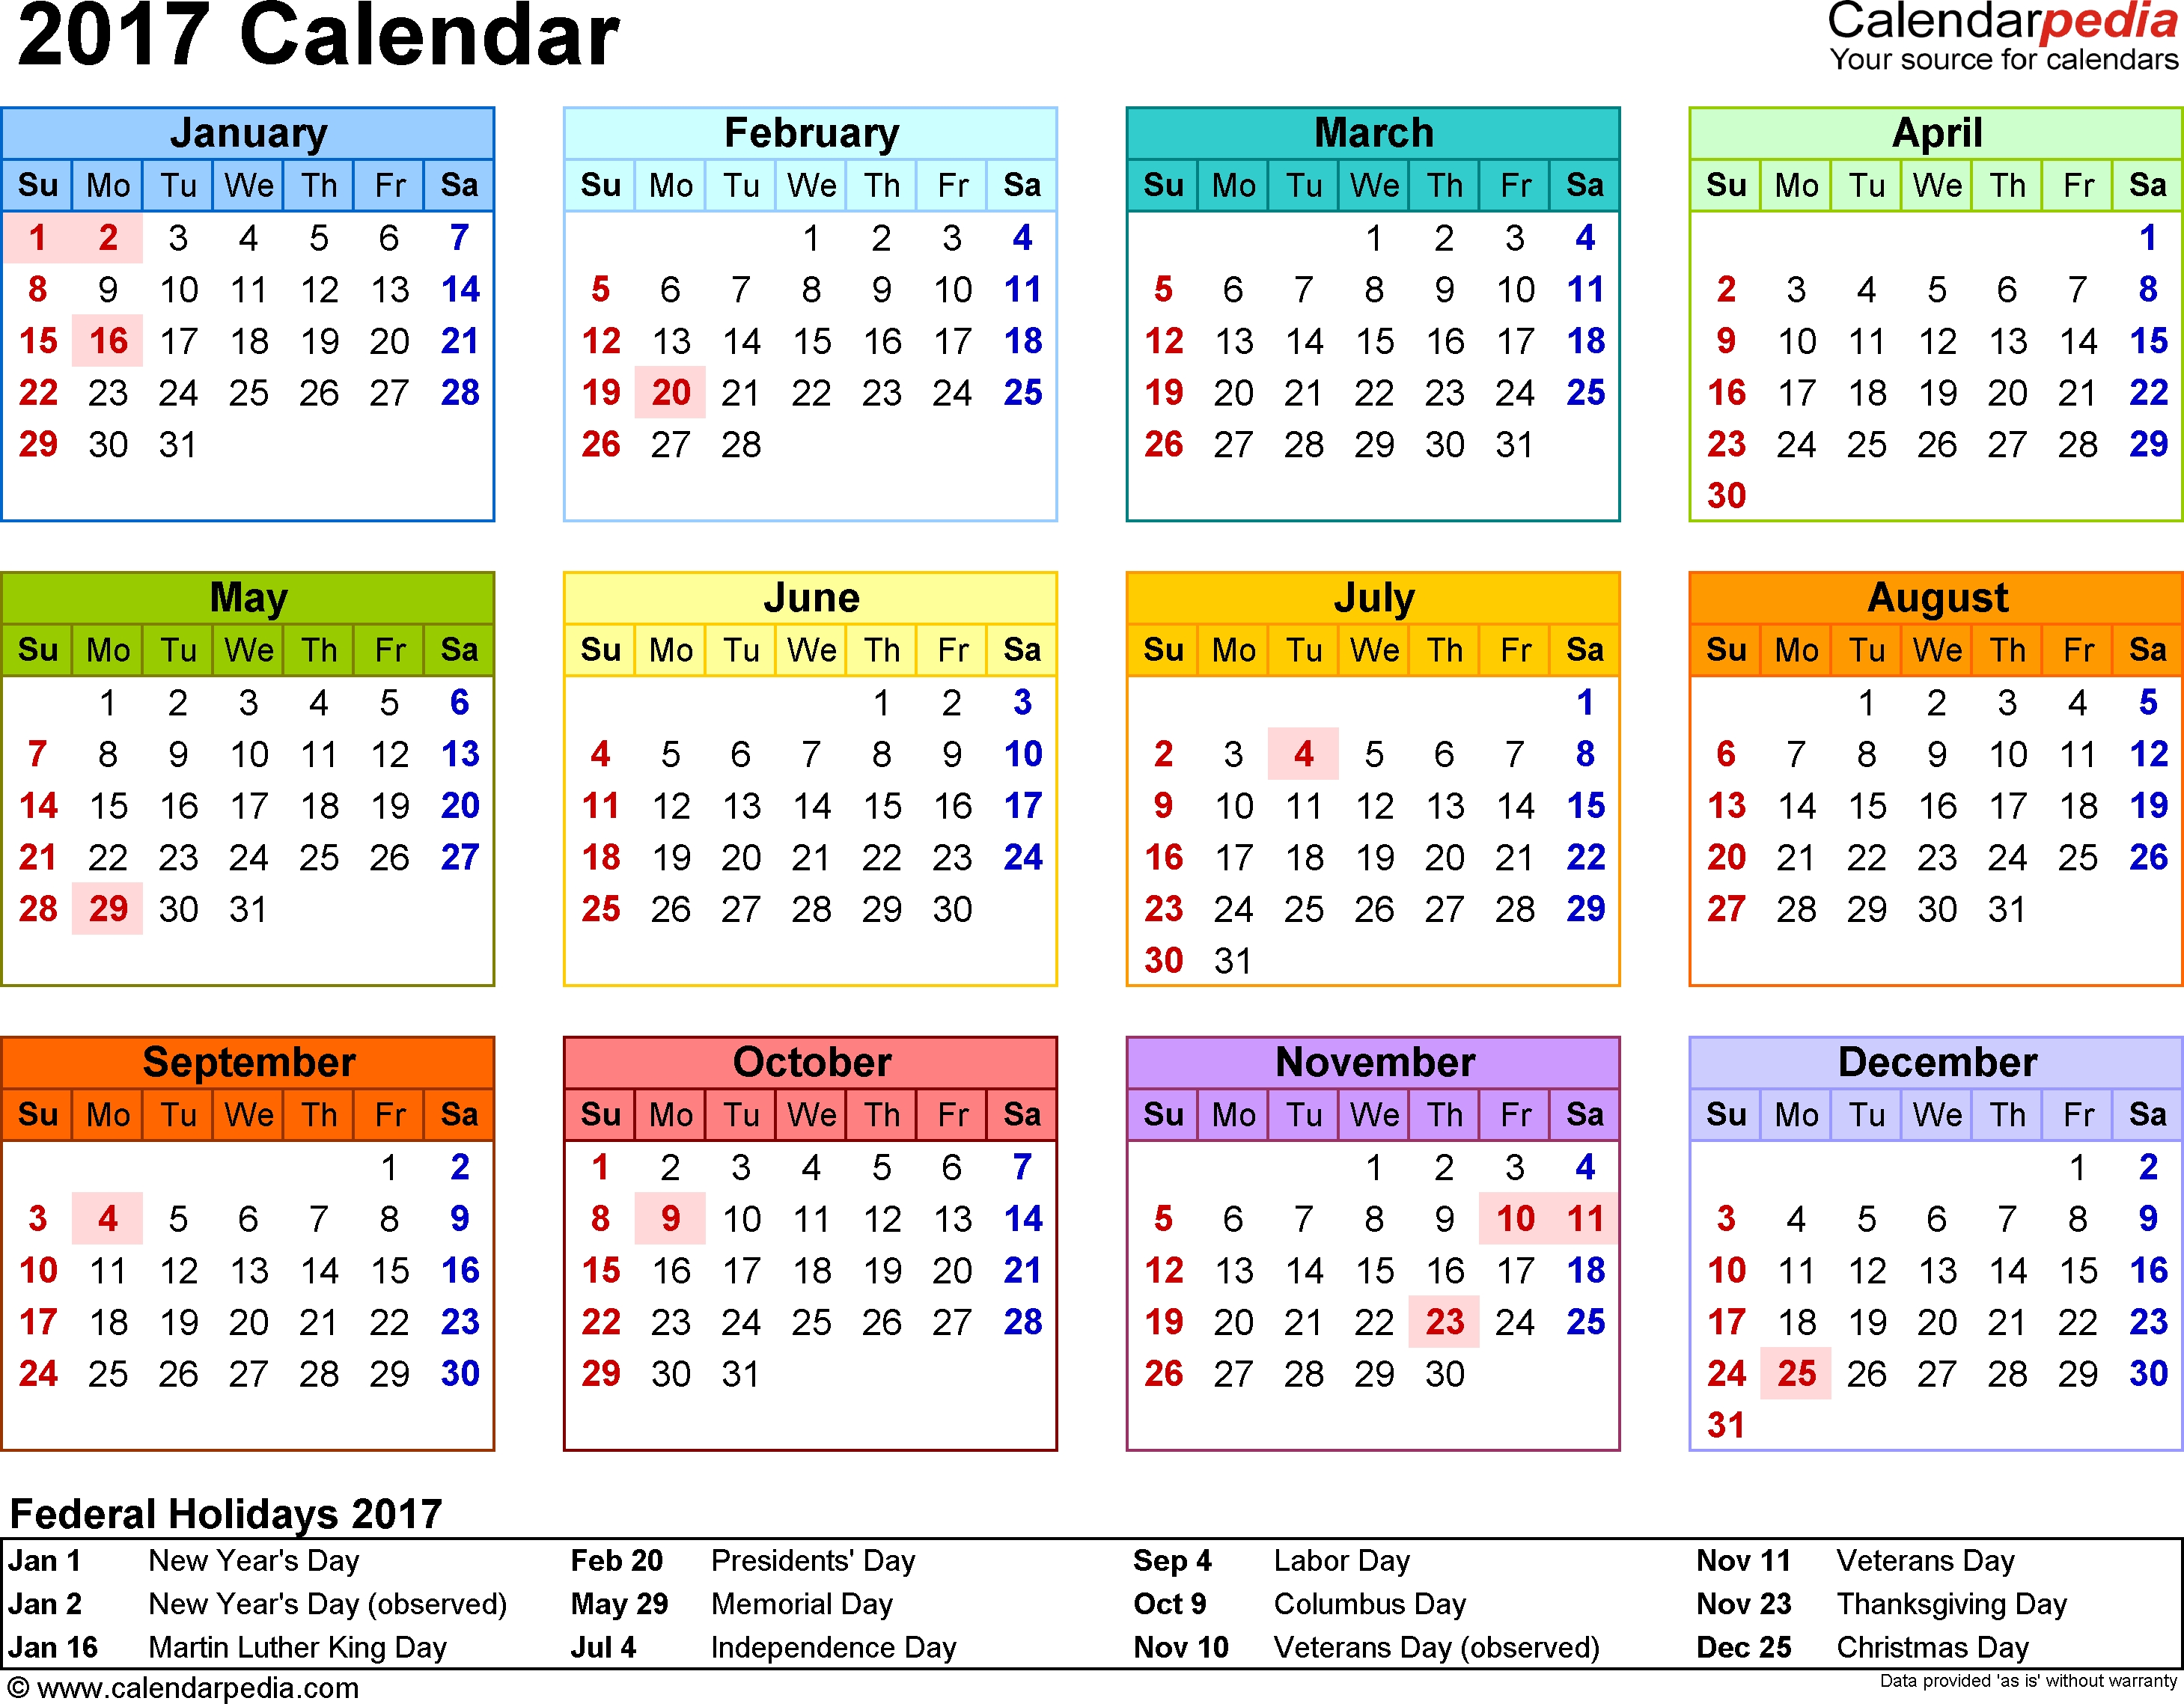 Template 8 2017 Calendar For Word Year At A Glance 1 Page In3abry